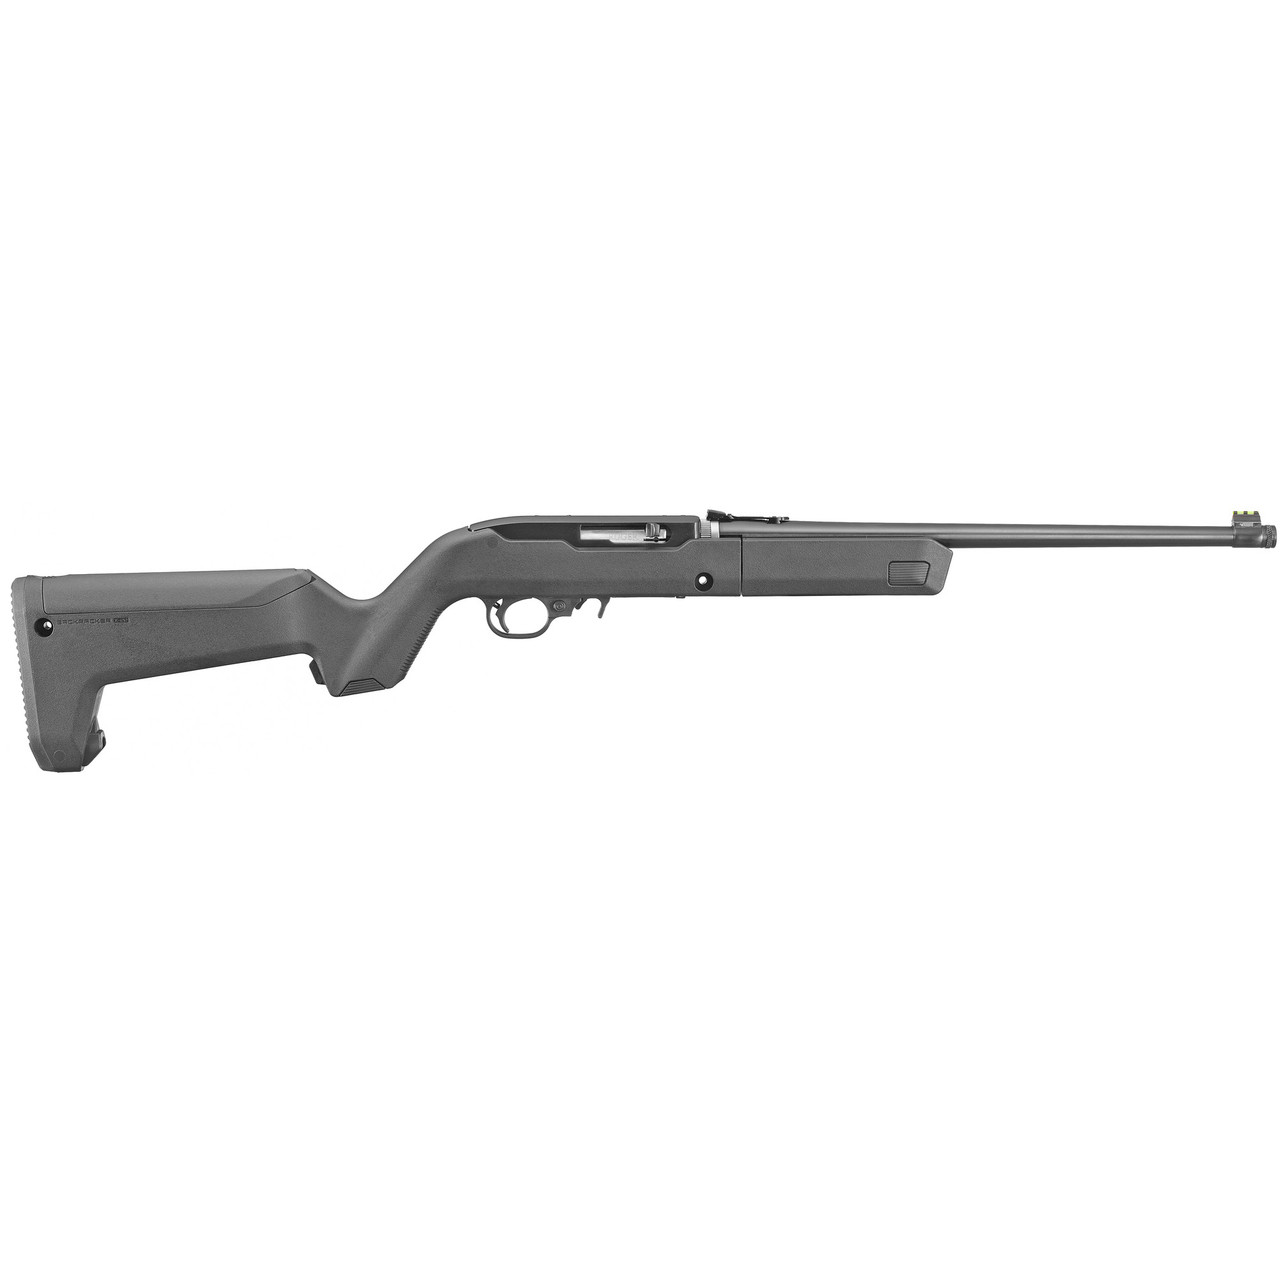 Ruger 10/22 Takedown Backpacker Talo Exclusive CALIFORNIA LEGAL - .22LR